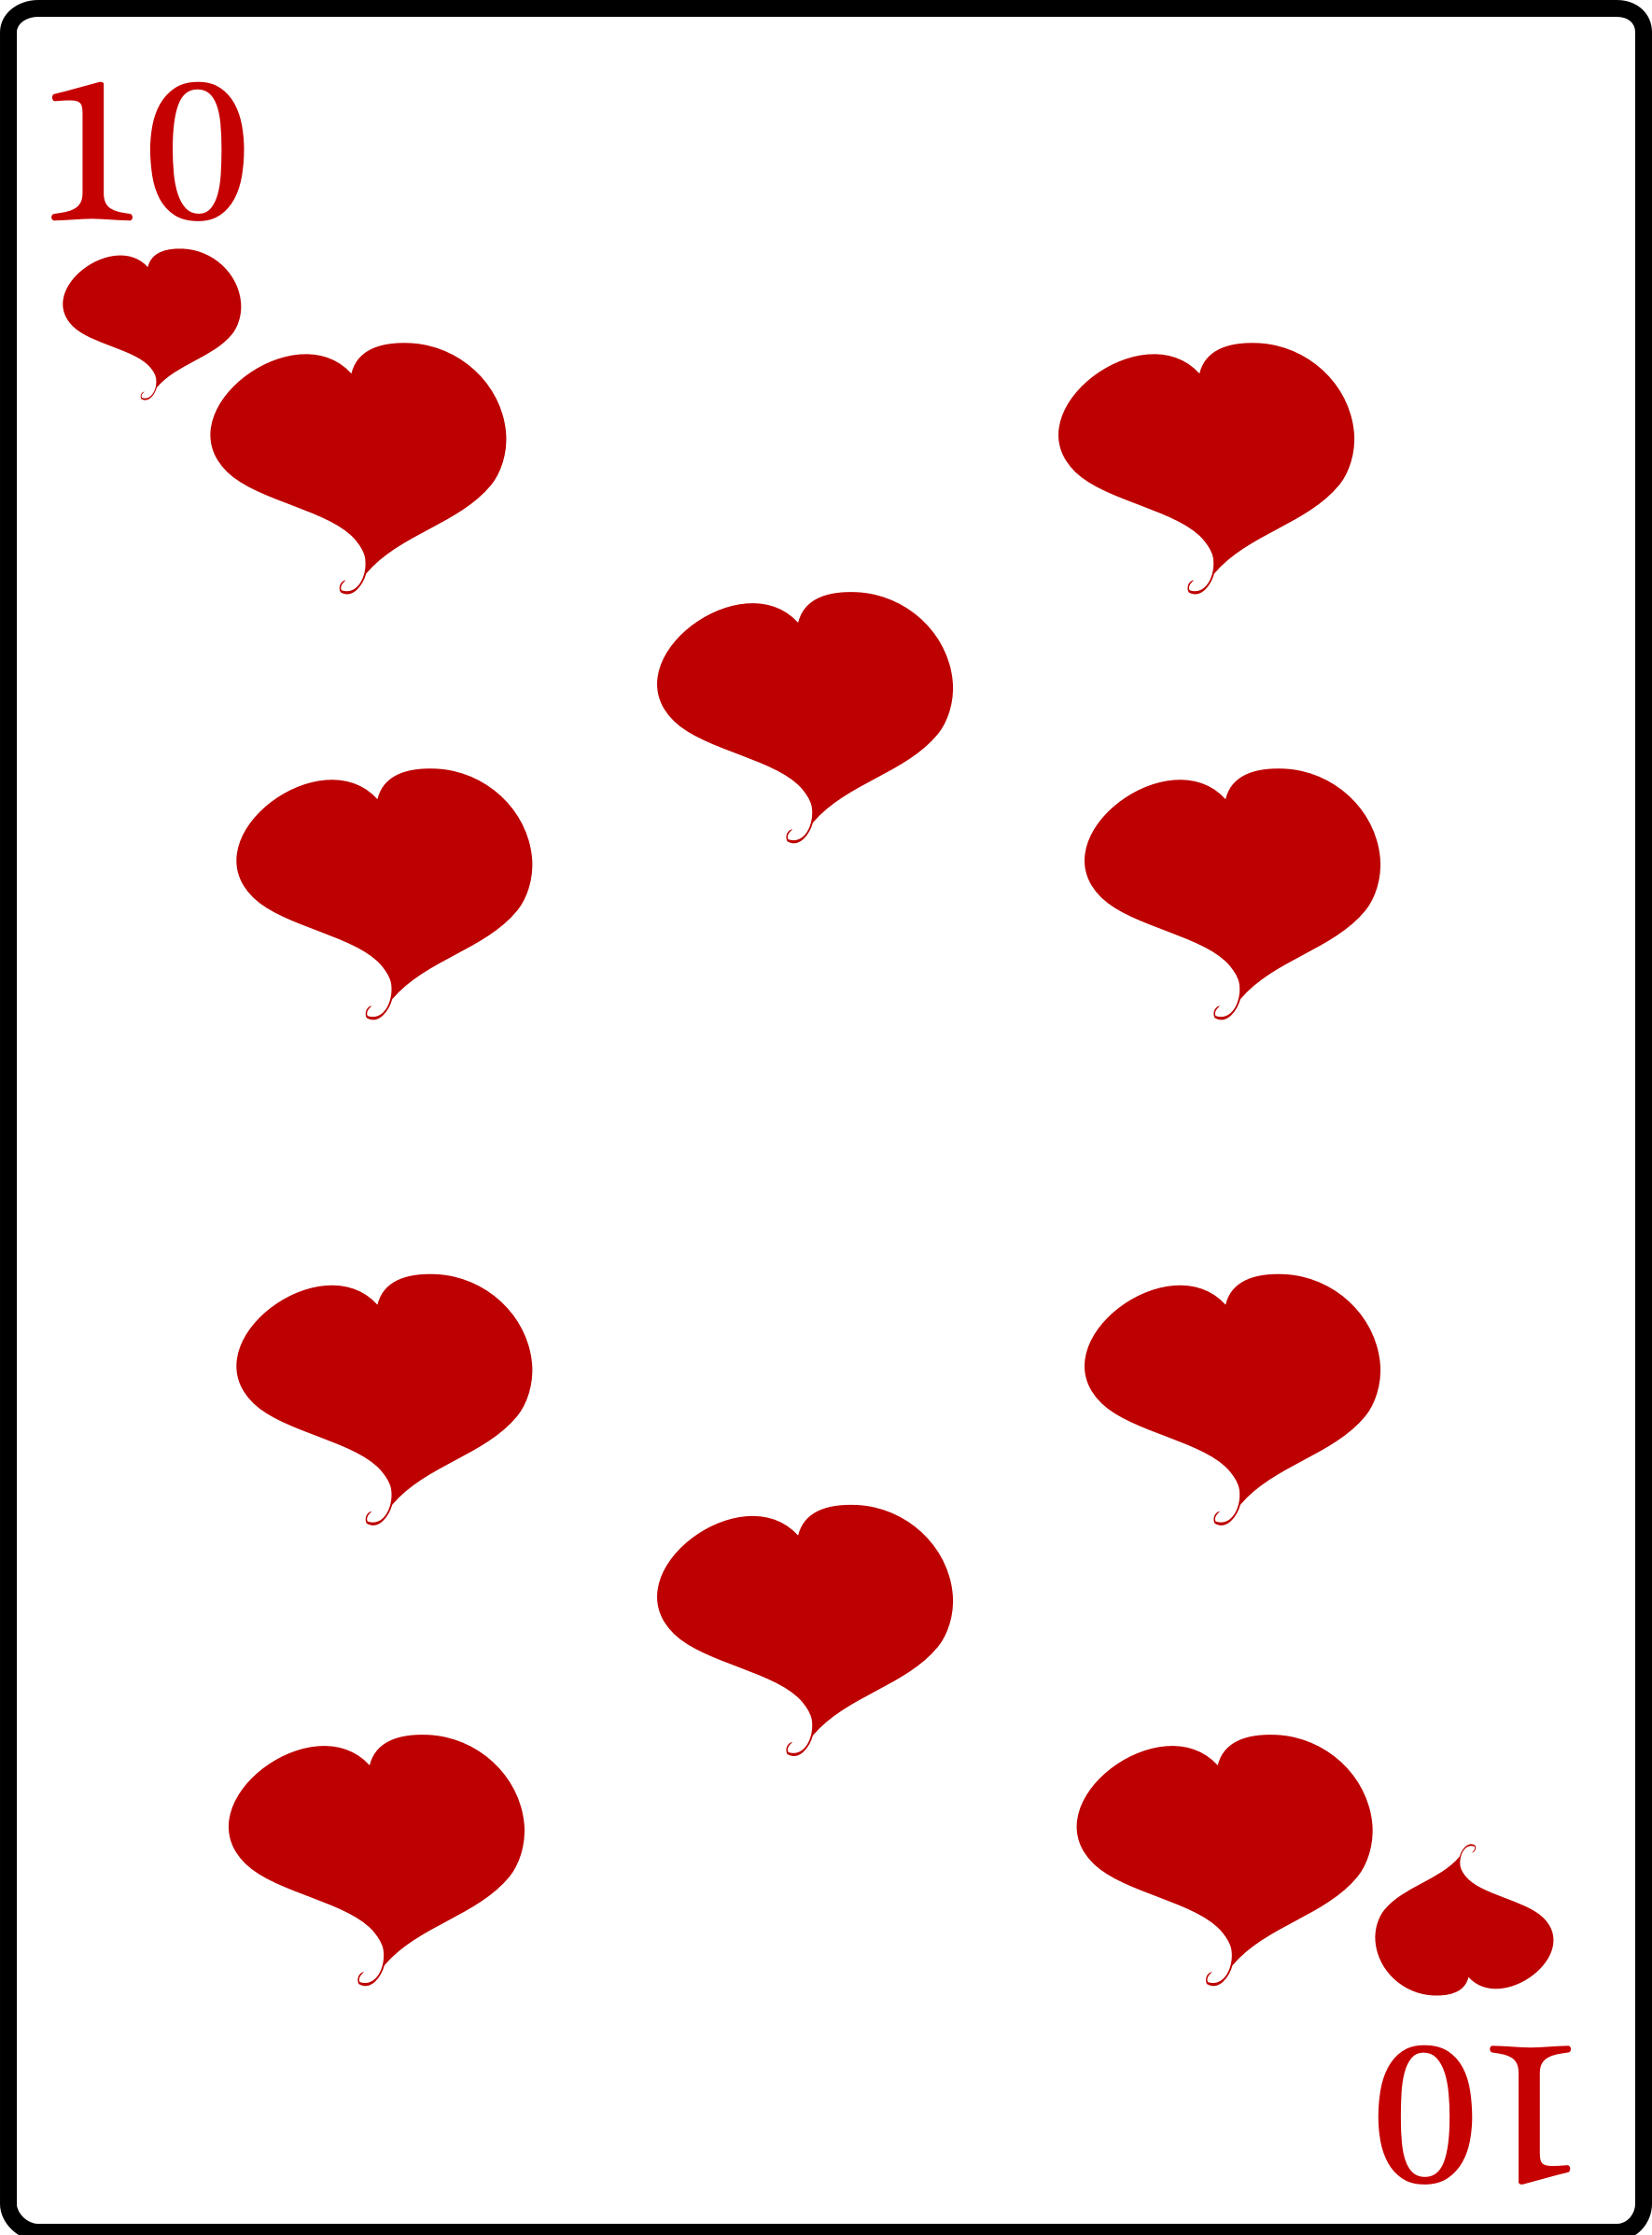 10 of Hearts by casino